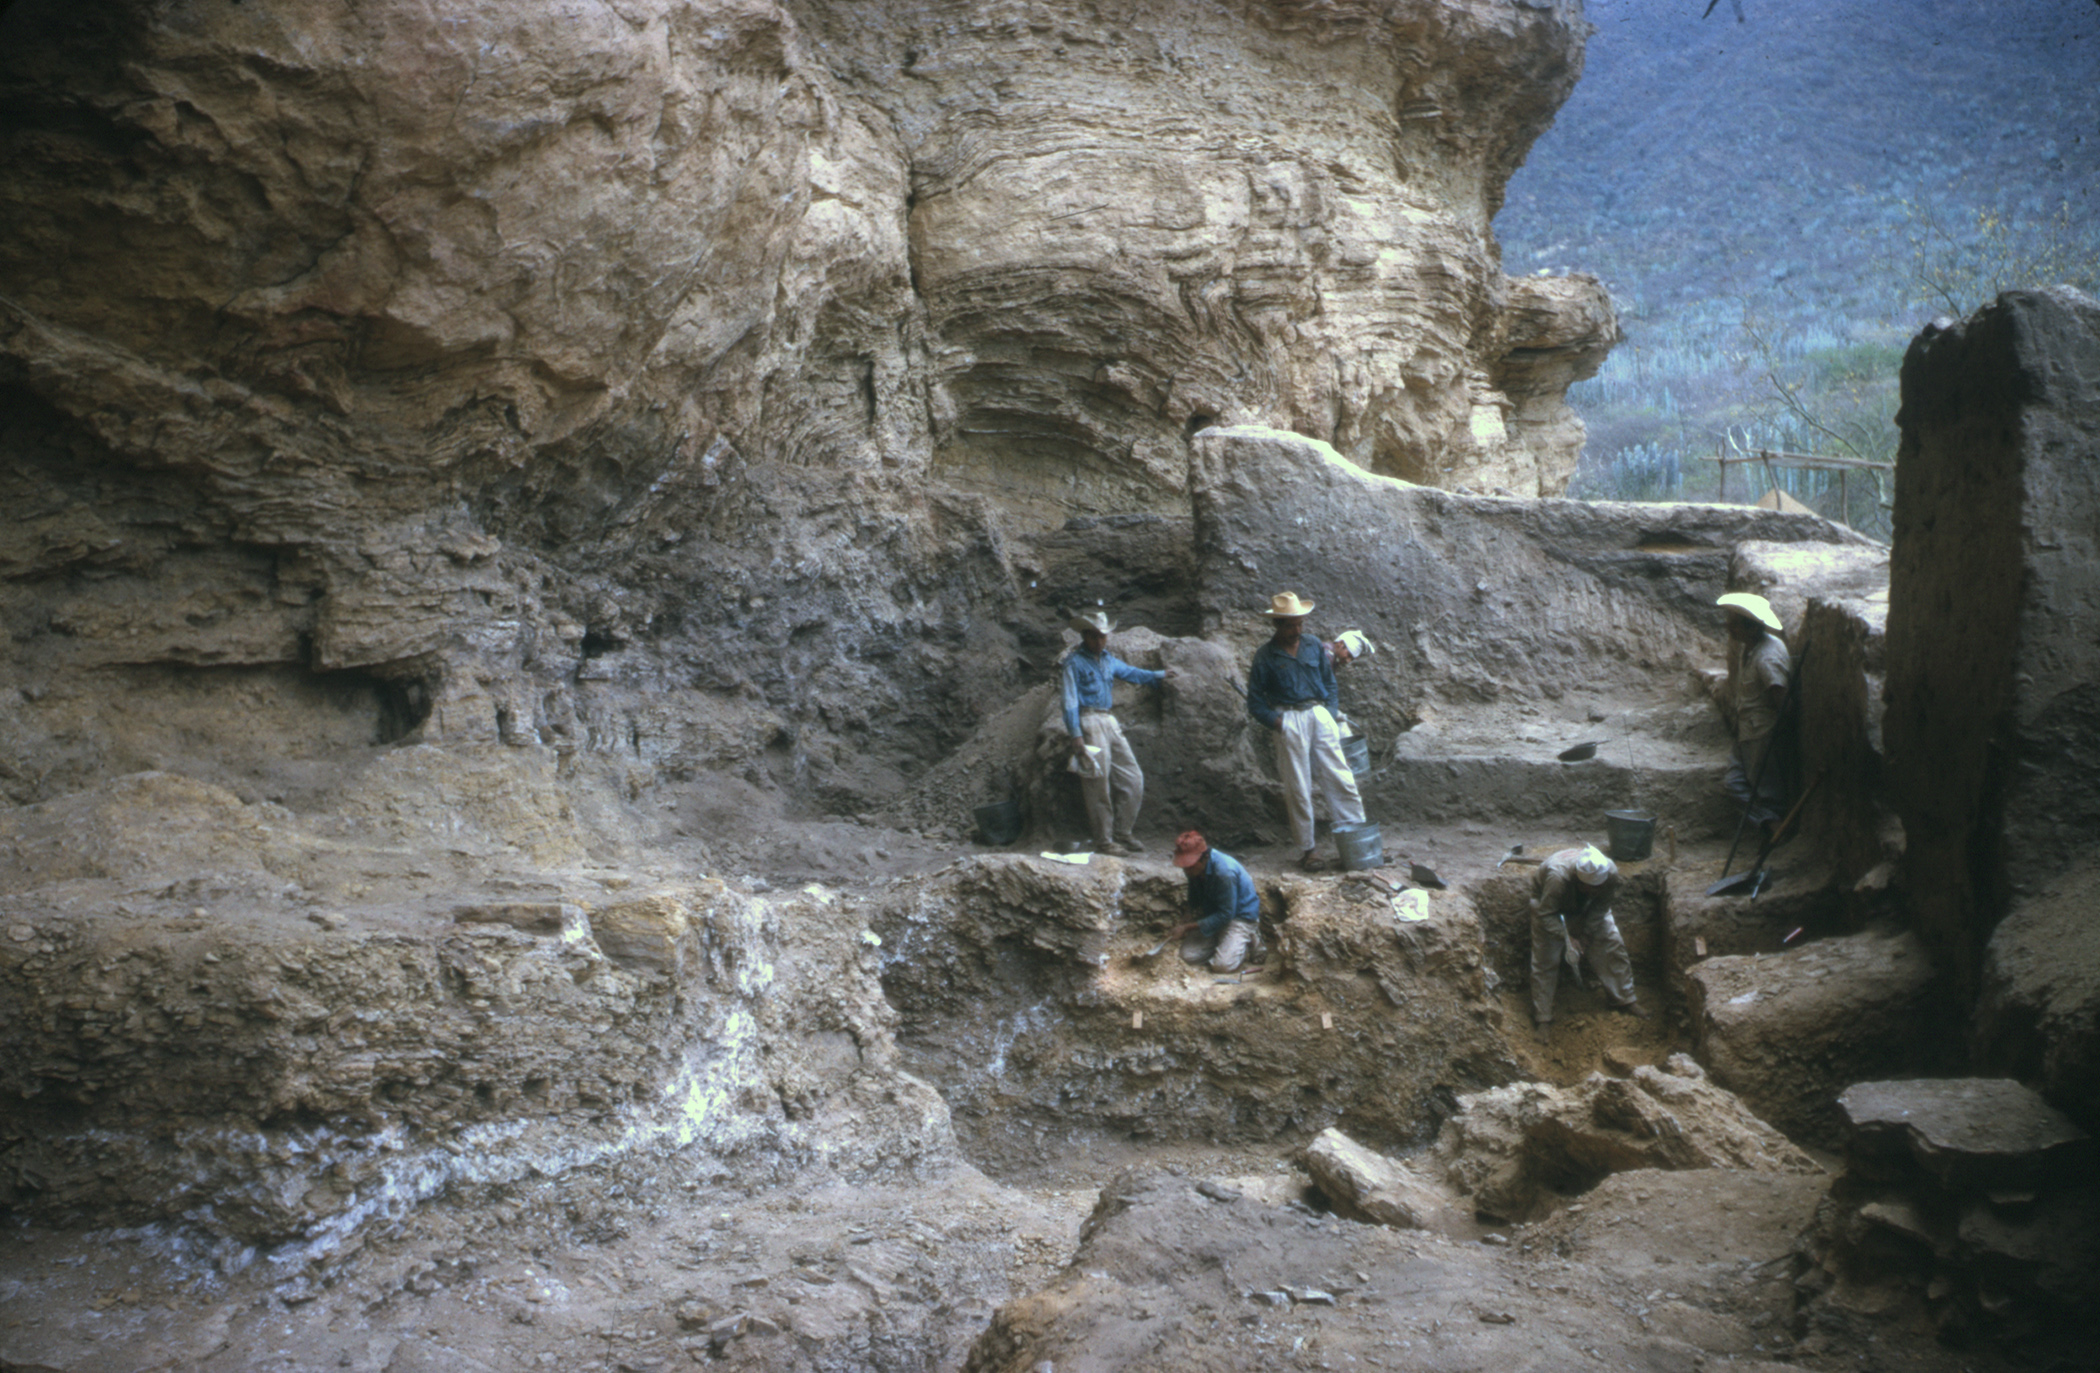 Image of excavators working in Coxcatlan Cave, Tehuacan Valley, Mexico, 1960s.